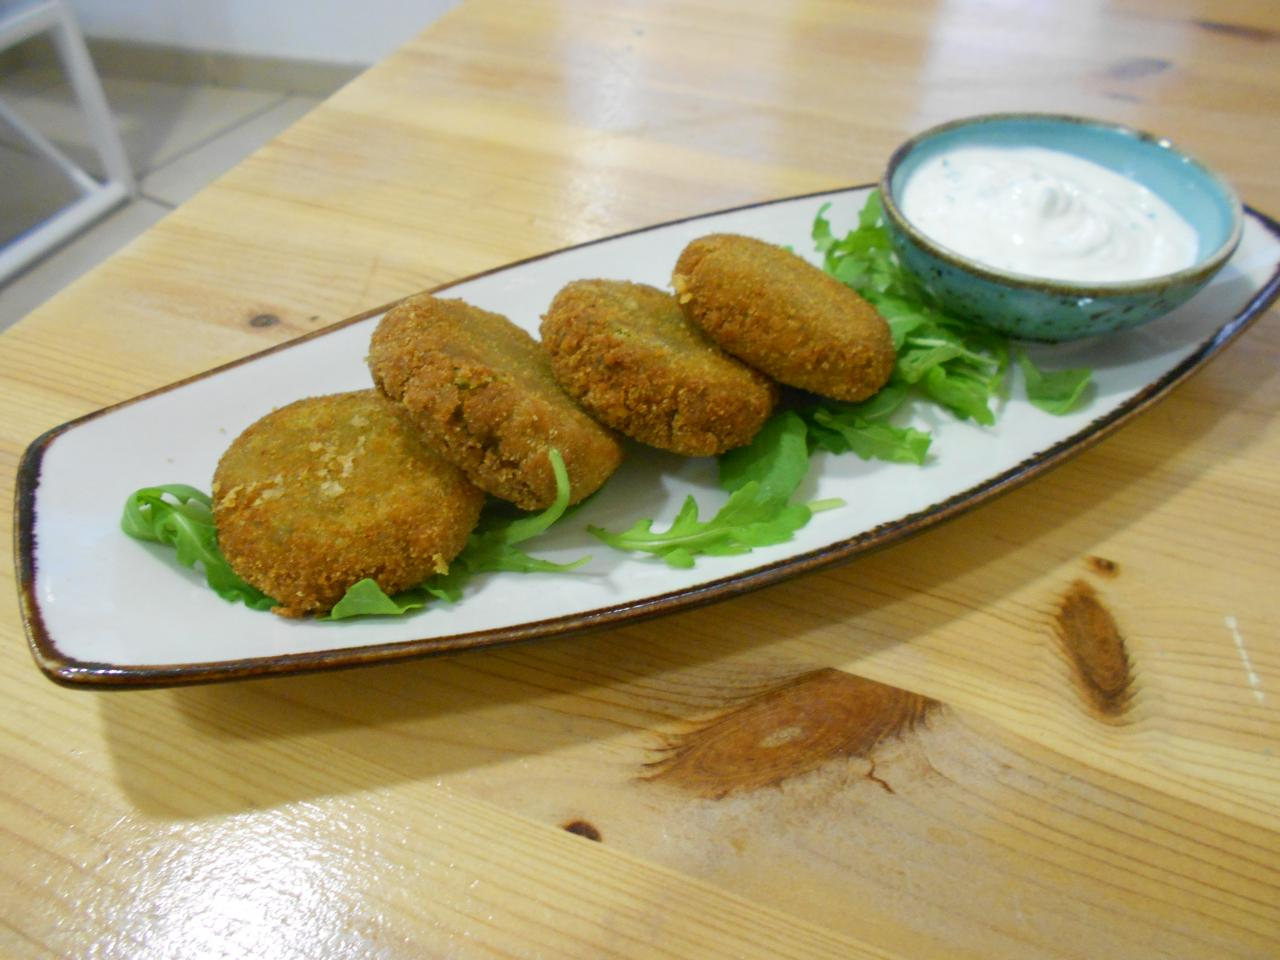 The falafel had lovely Middle Eastern flavours